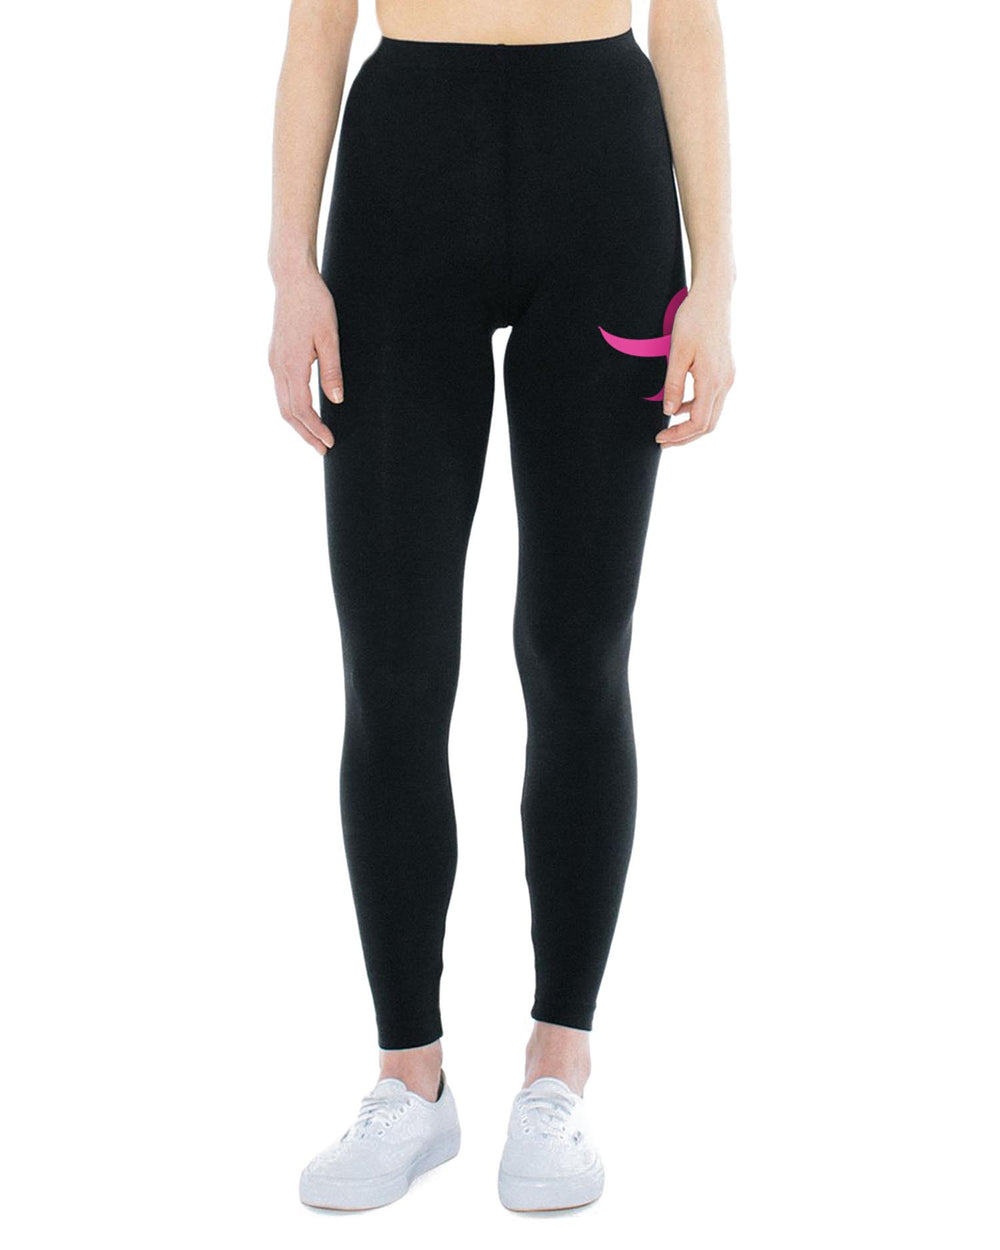 SGK Black Leggings